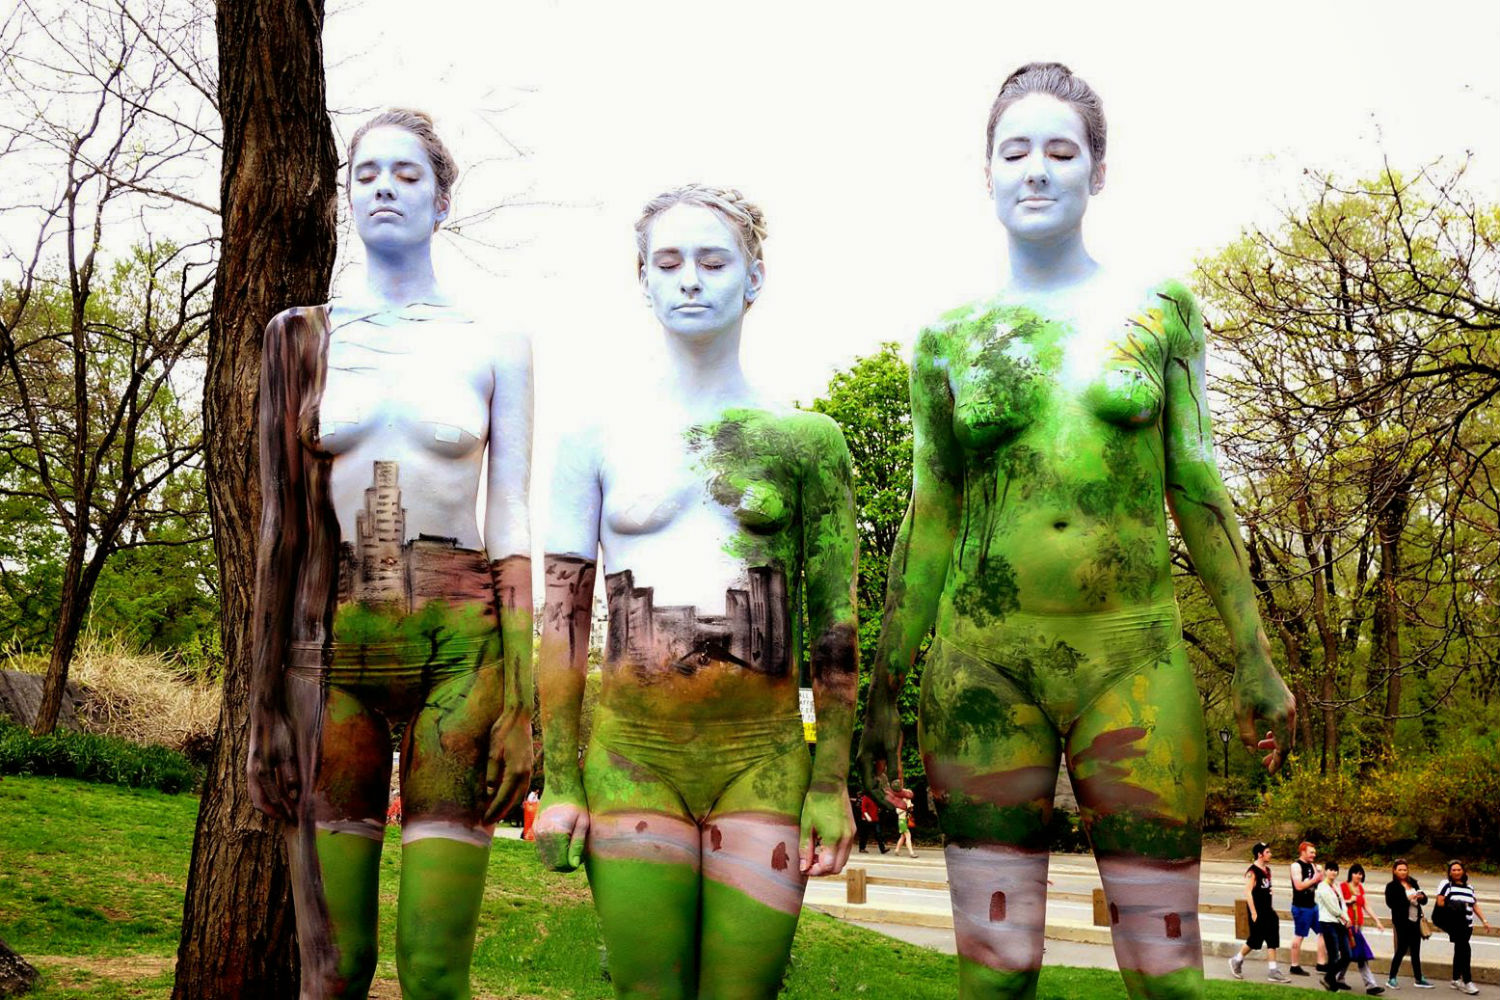 natalie fletcher body paint landscape portrait